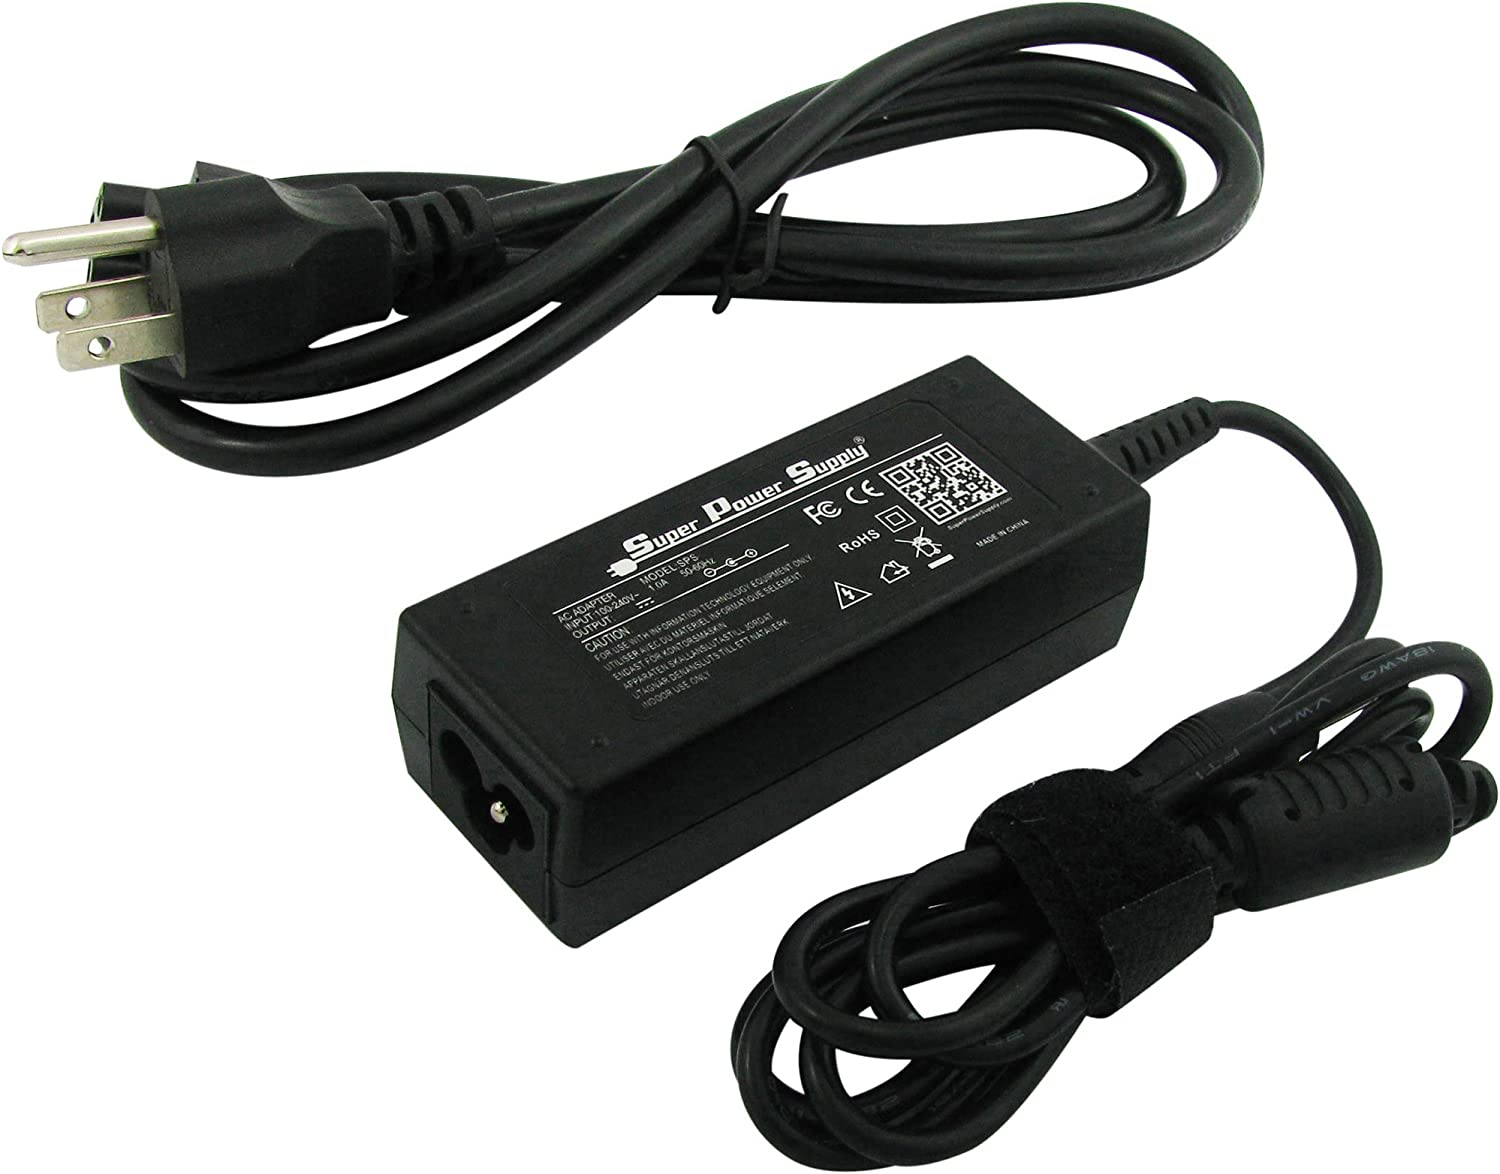 Super Power Supply AC/DC Laptop Adapter Charger Cord for Acer Aspire One D250-1610, D250-1706, D250-1738, D250-1Bb, D250-1Br, D255-1134, D255-1203, D255-1549 ; 40W Netbook Notebook Battery Plug